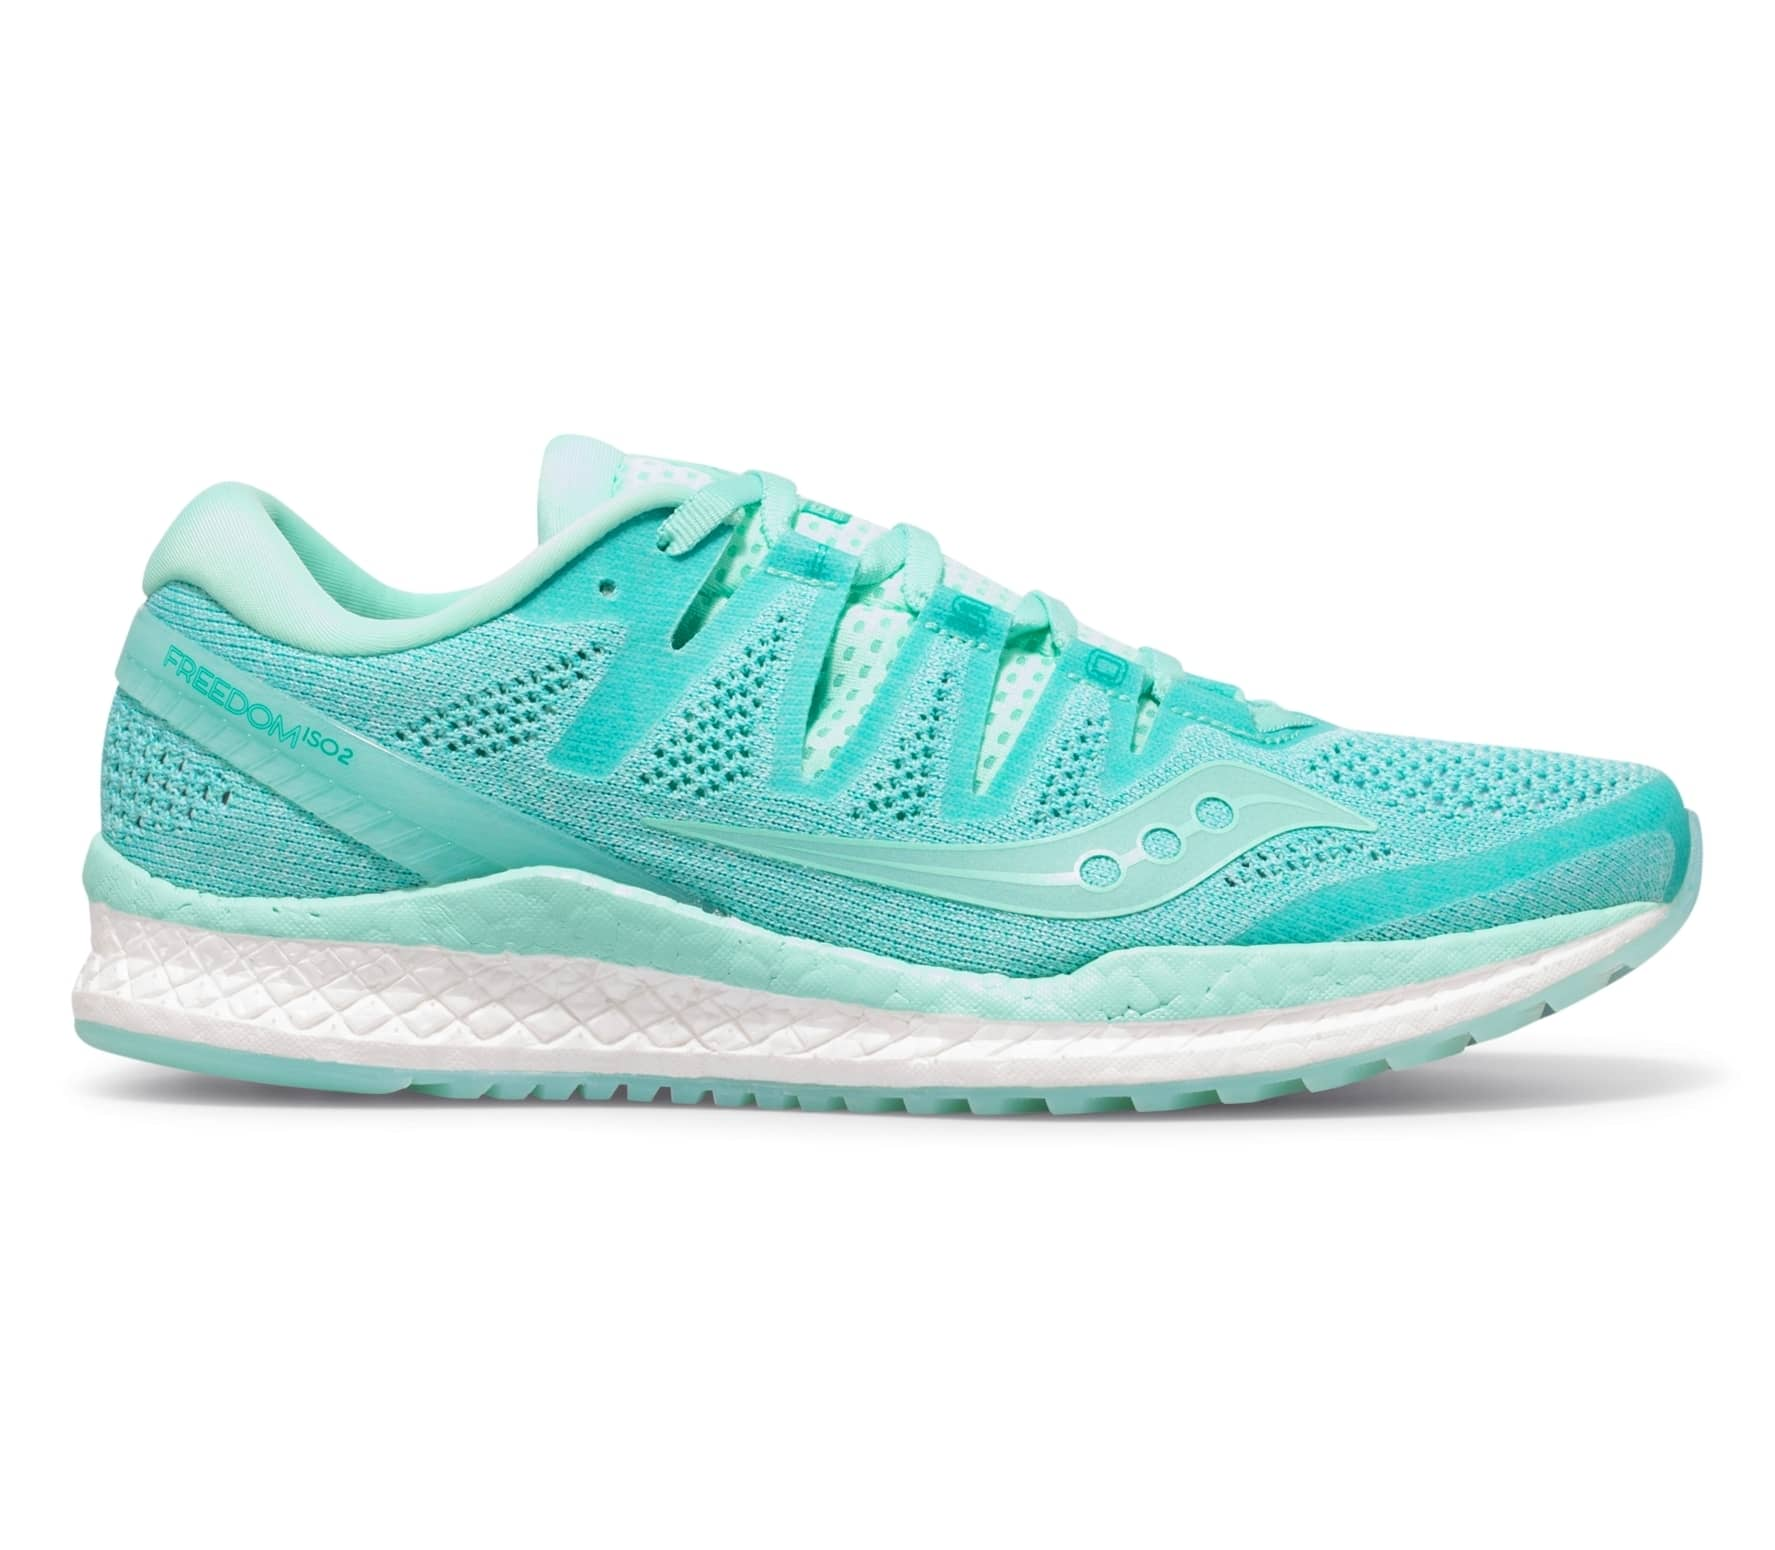 Saucony - Freedom Iso 2 women s running shoes (turquoise white ... b3a5673e833b